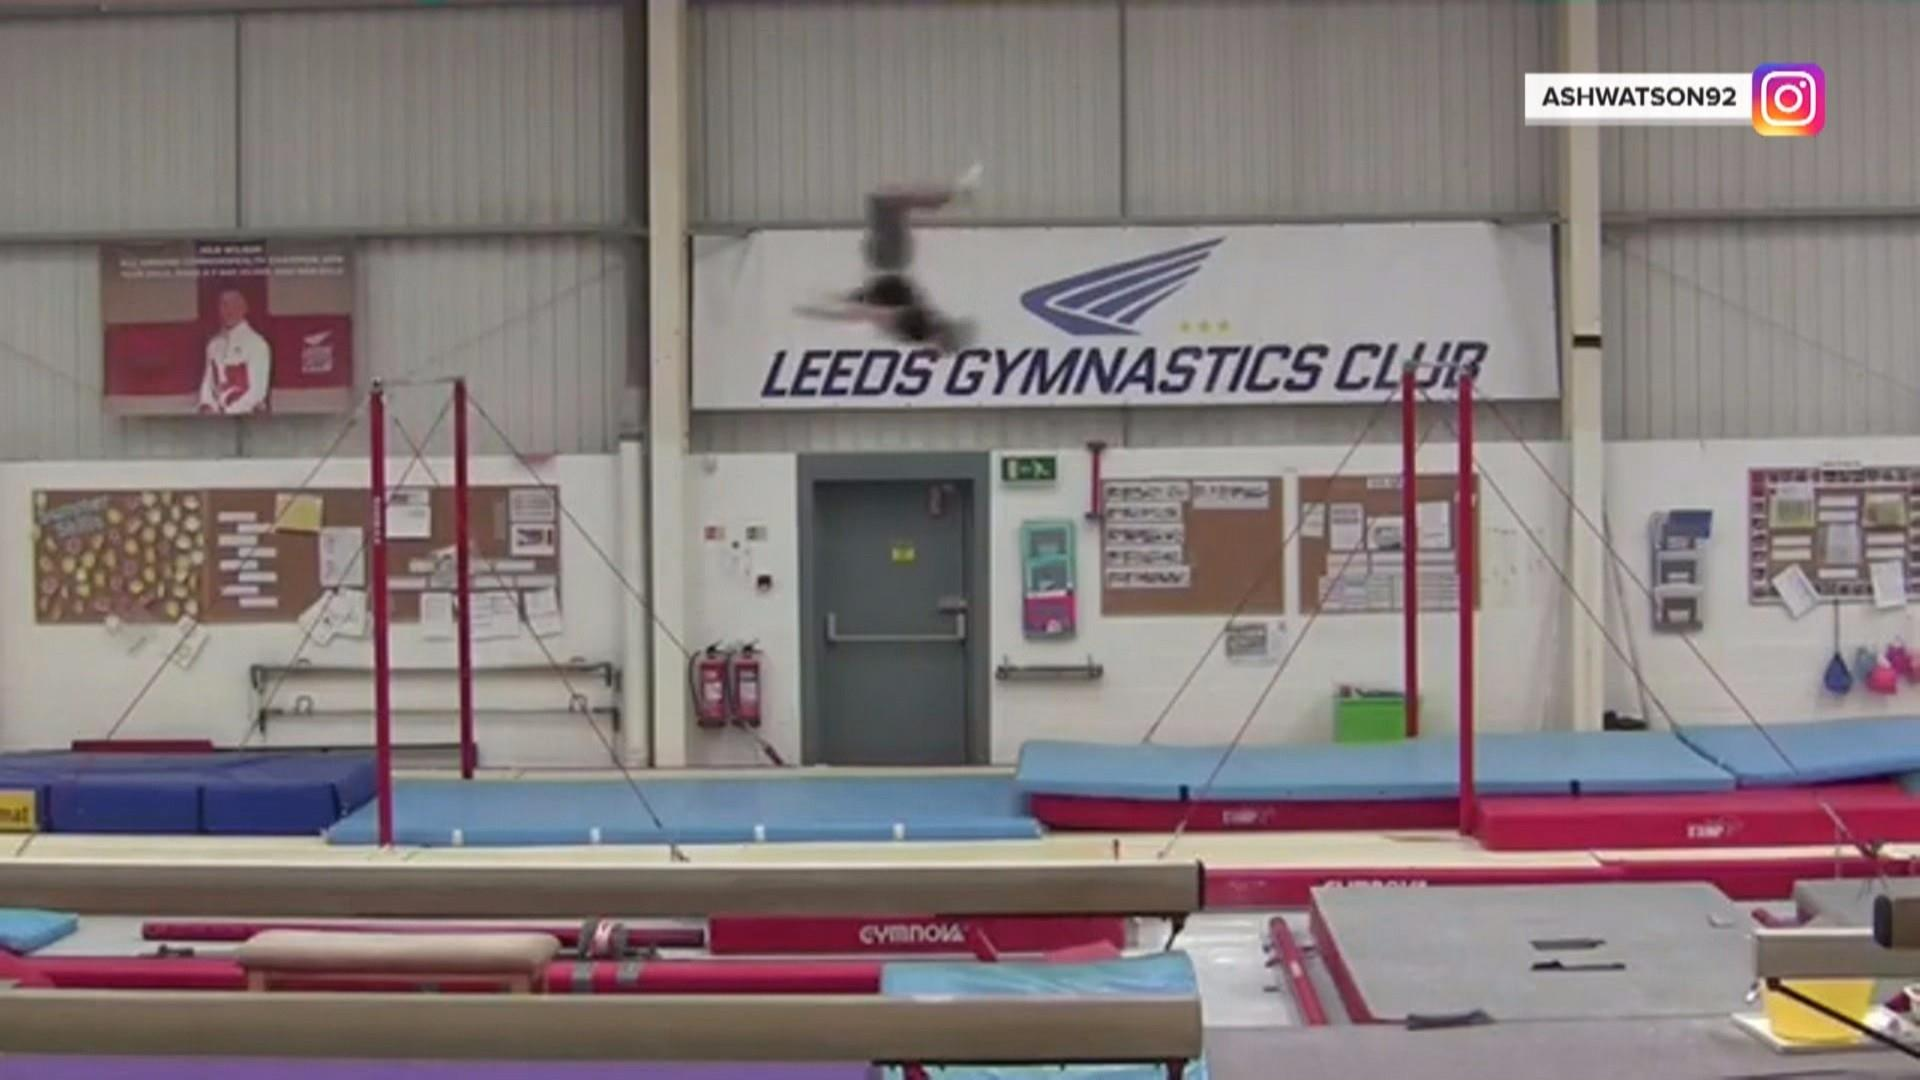 26-year-old gymnast sets world record with incredible backflip